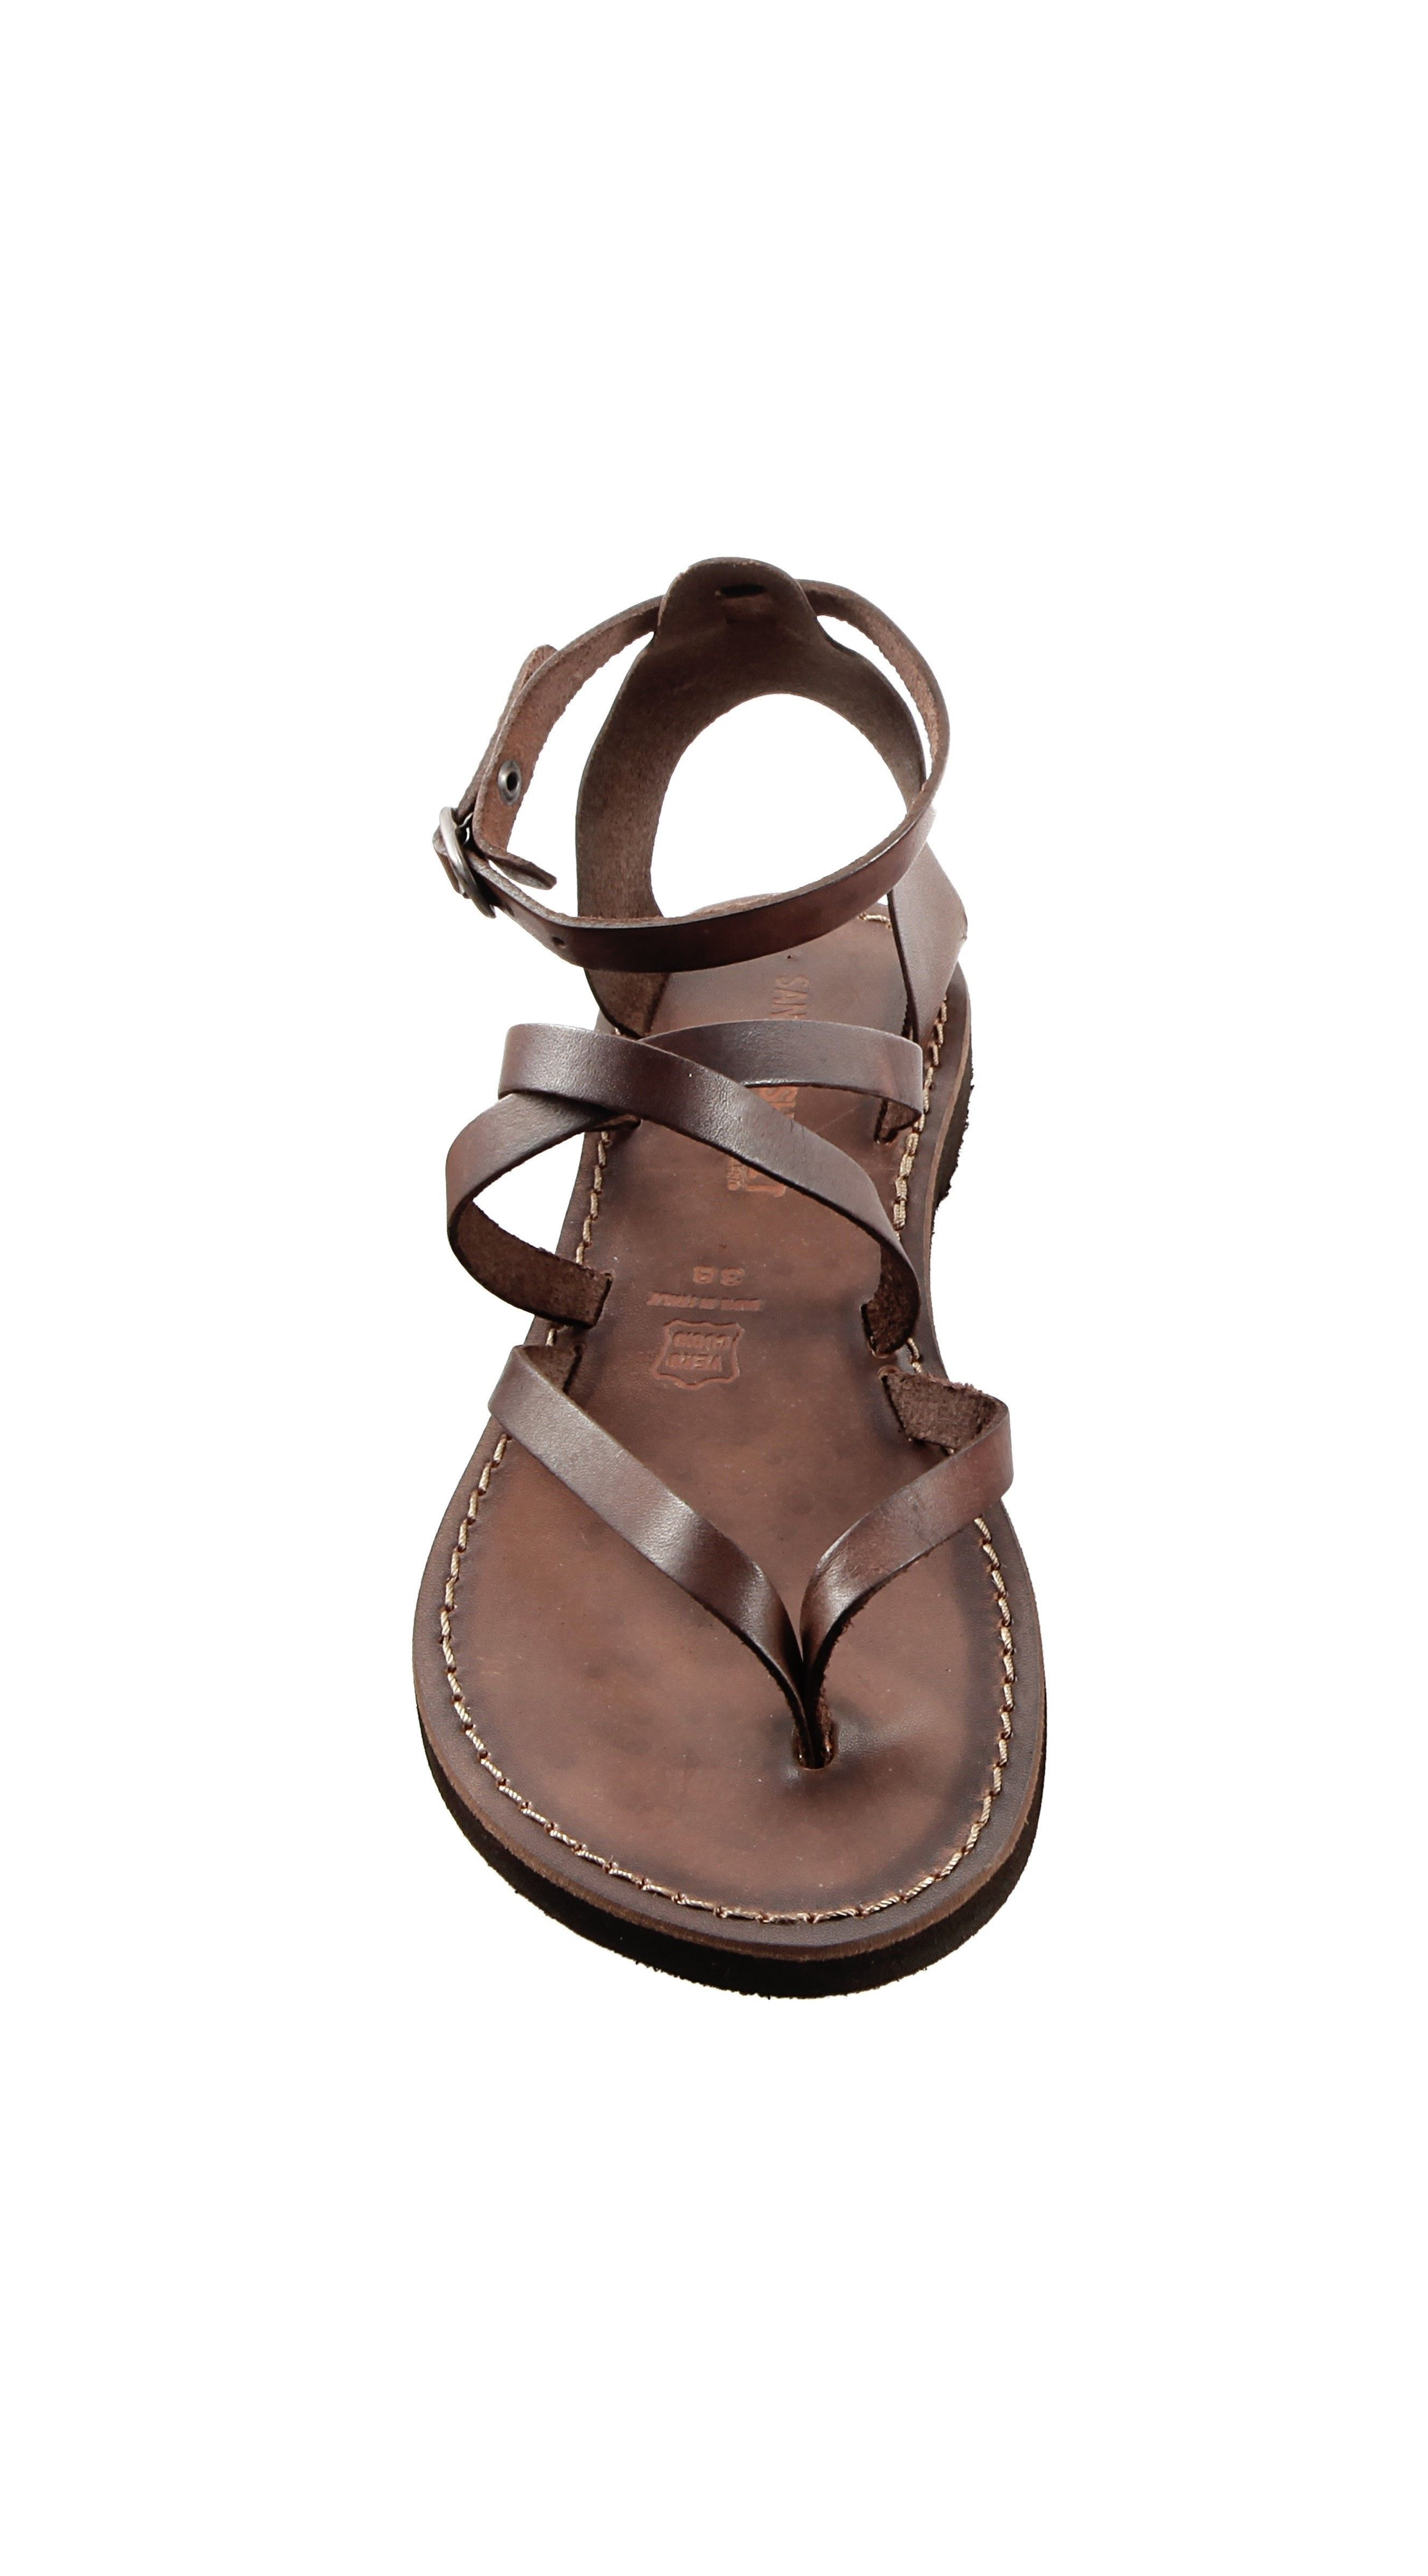 Fashion Cheap Sandals Slippers Shoes Online Sports Amazon AqjL4c5R3